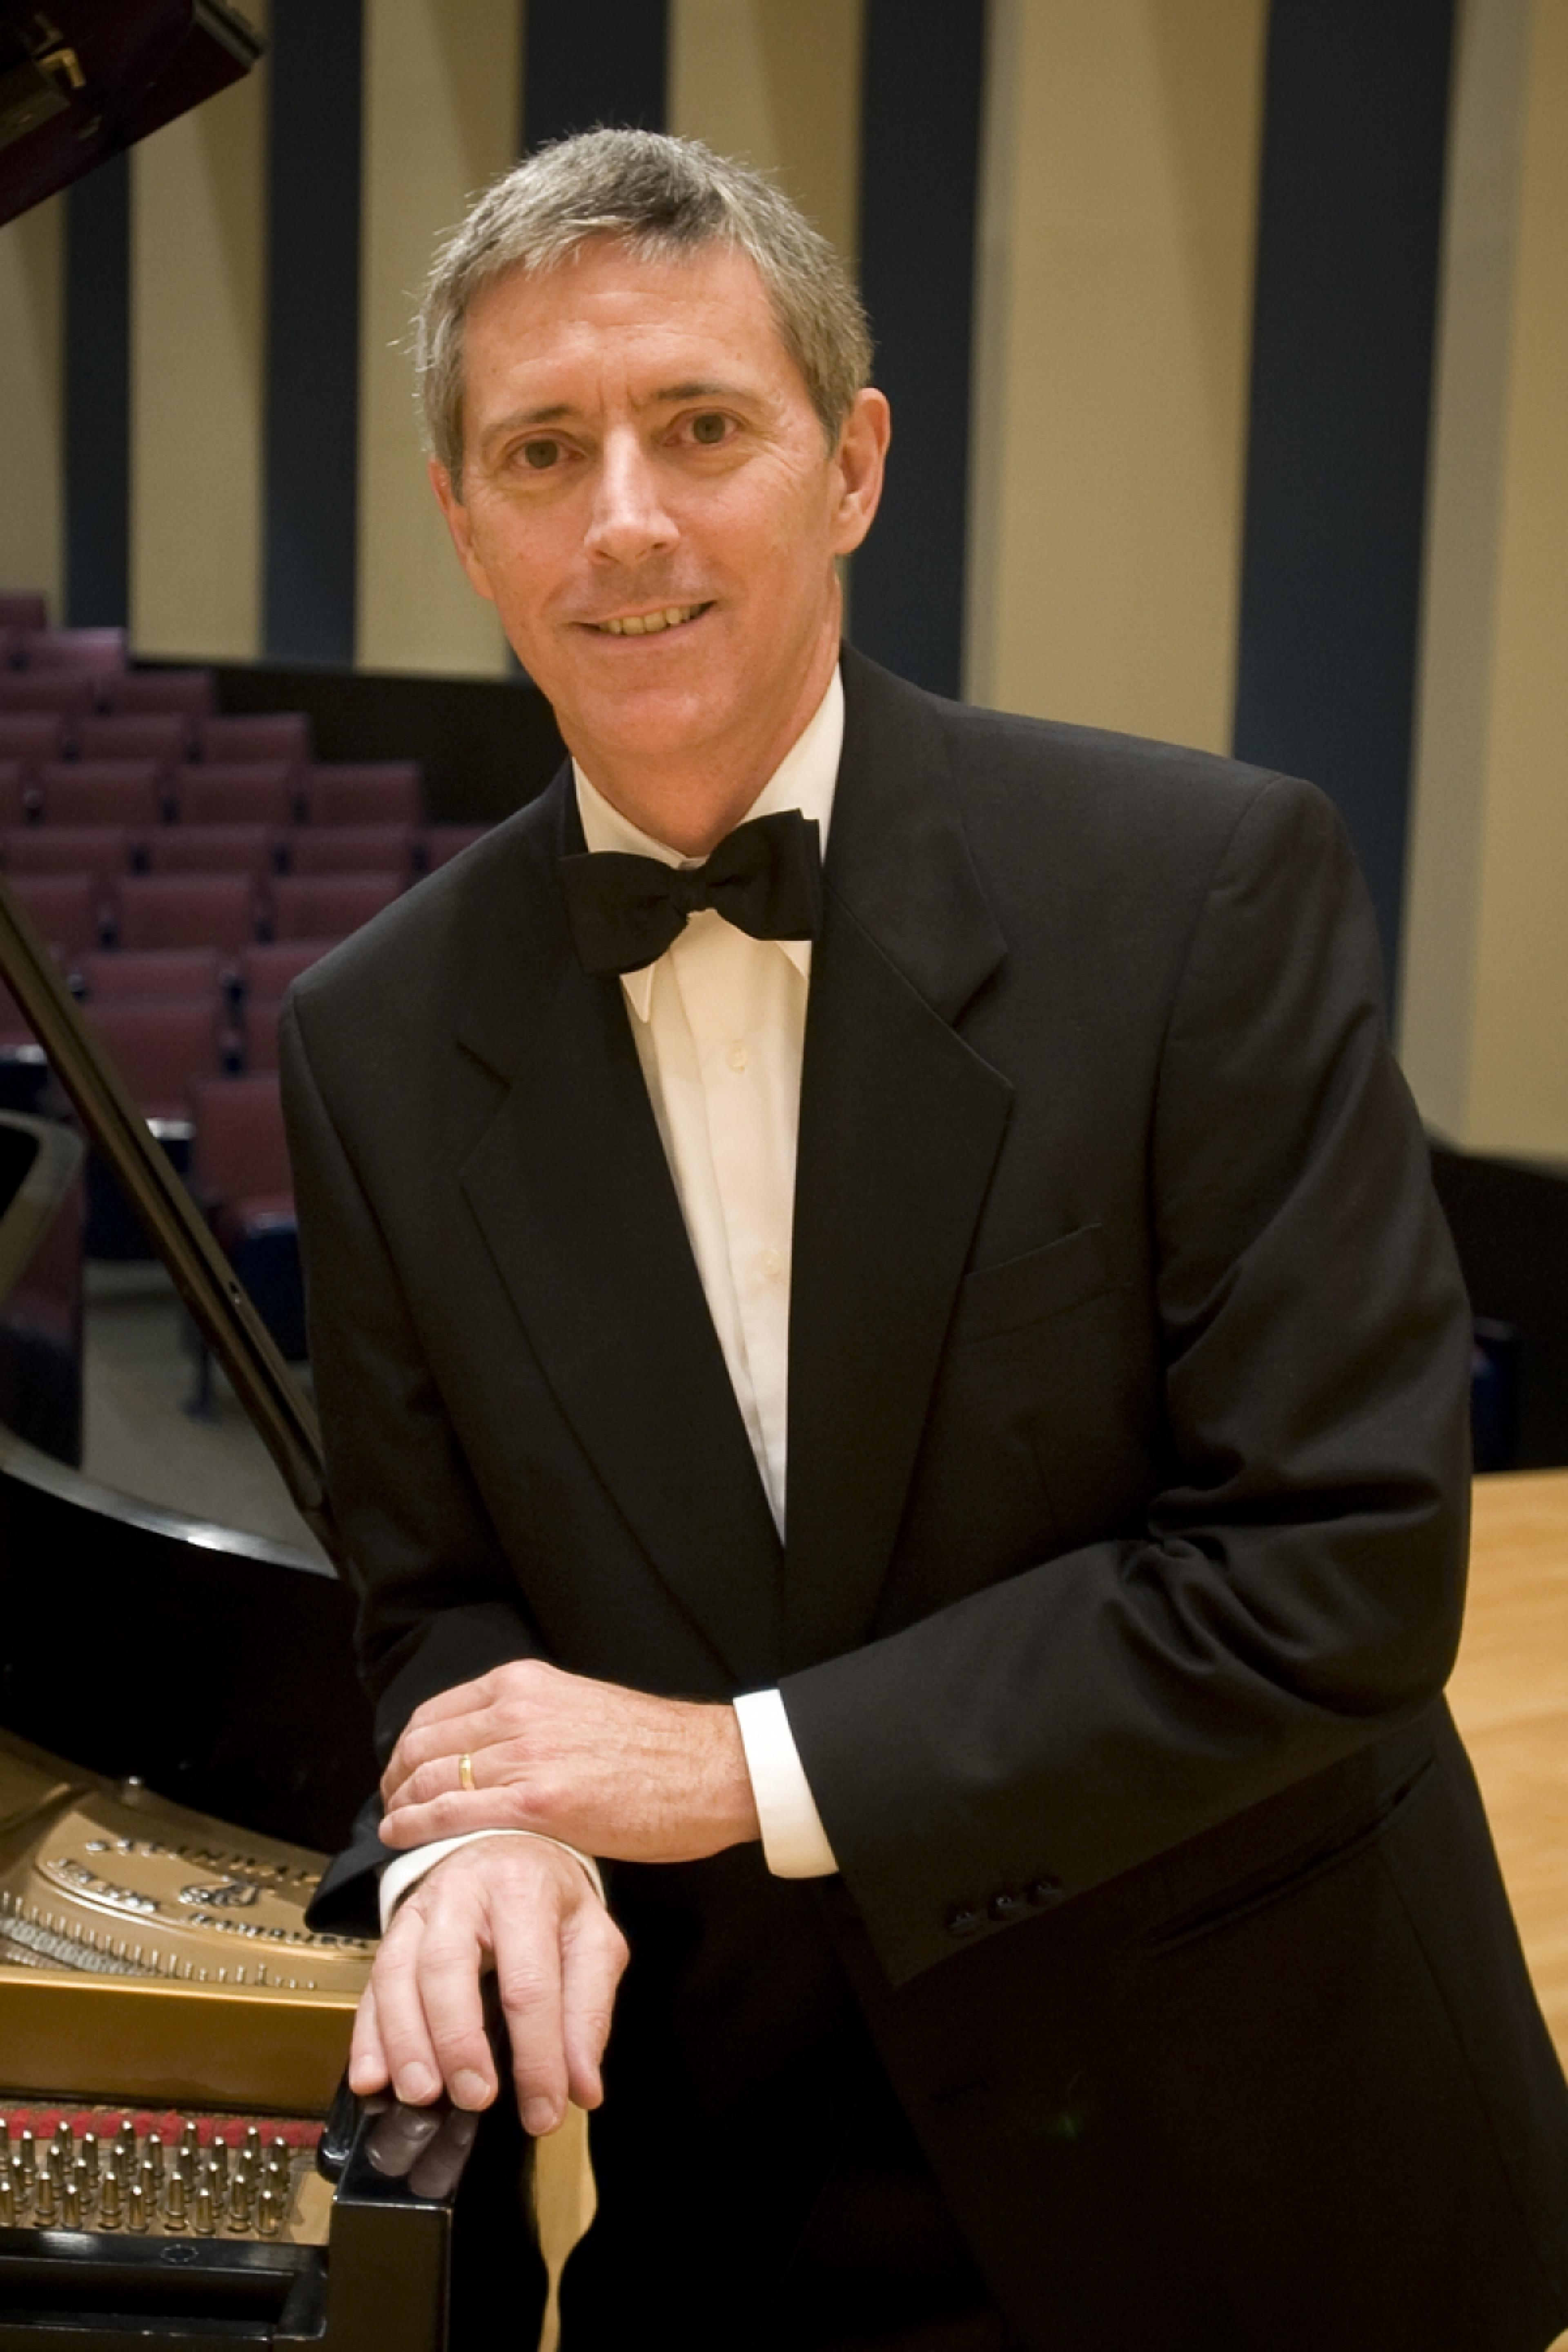 publicity image for Andrew Parr, faculty piano recital